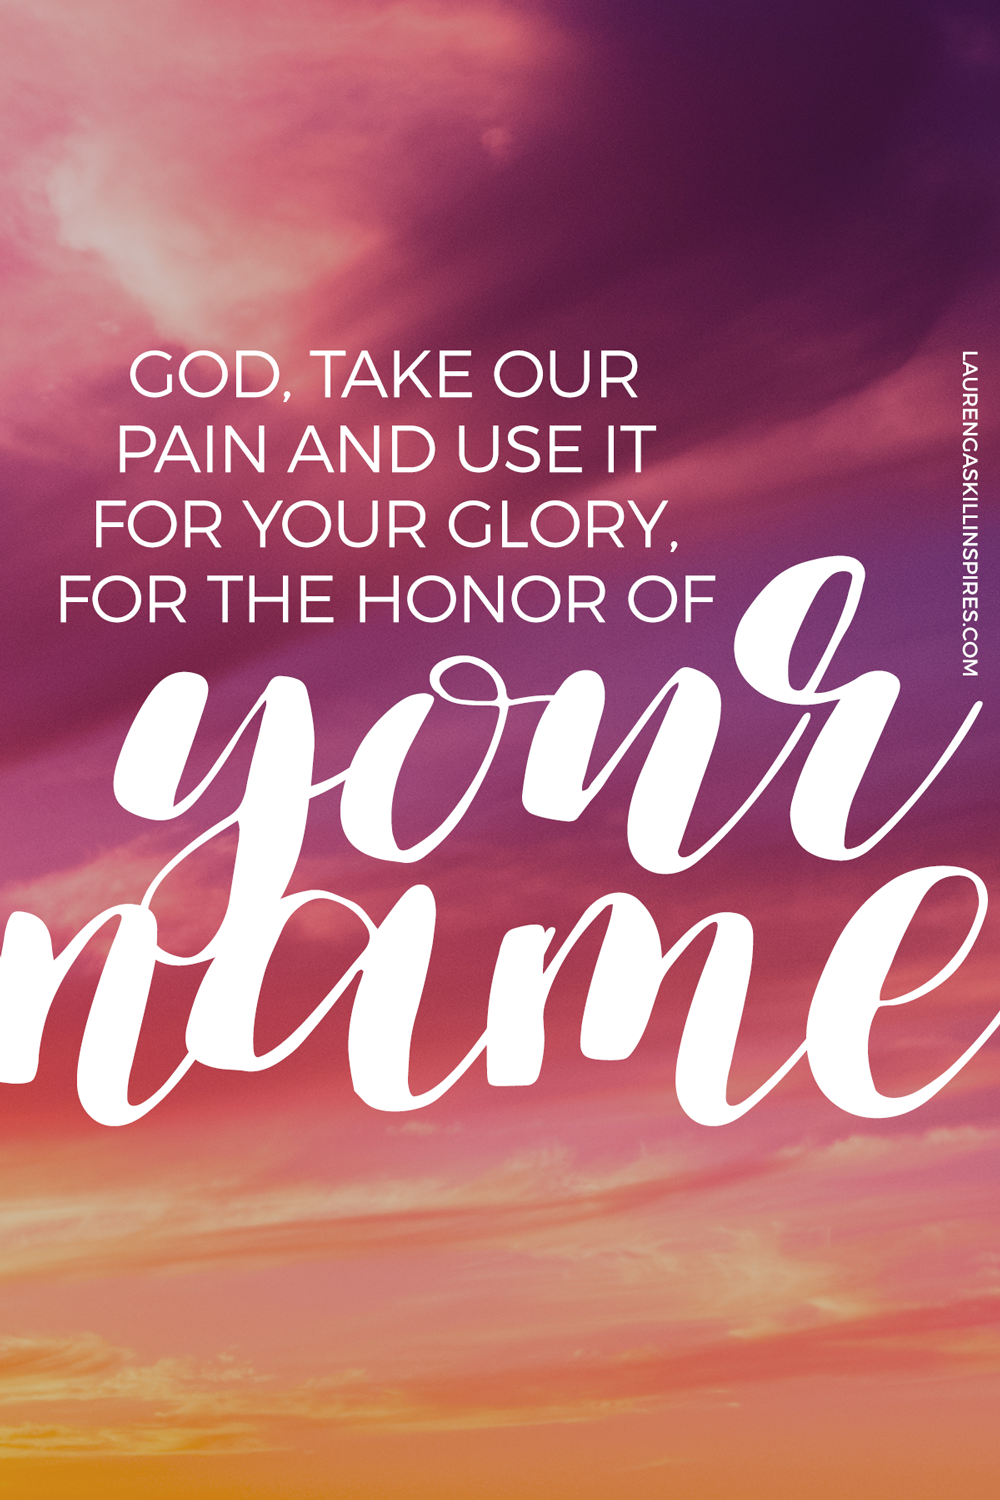 God can take our pain and use it for His glory! Nothing is wasted!